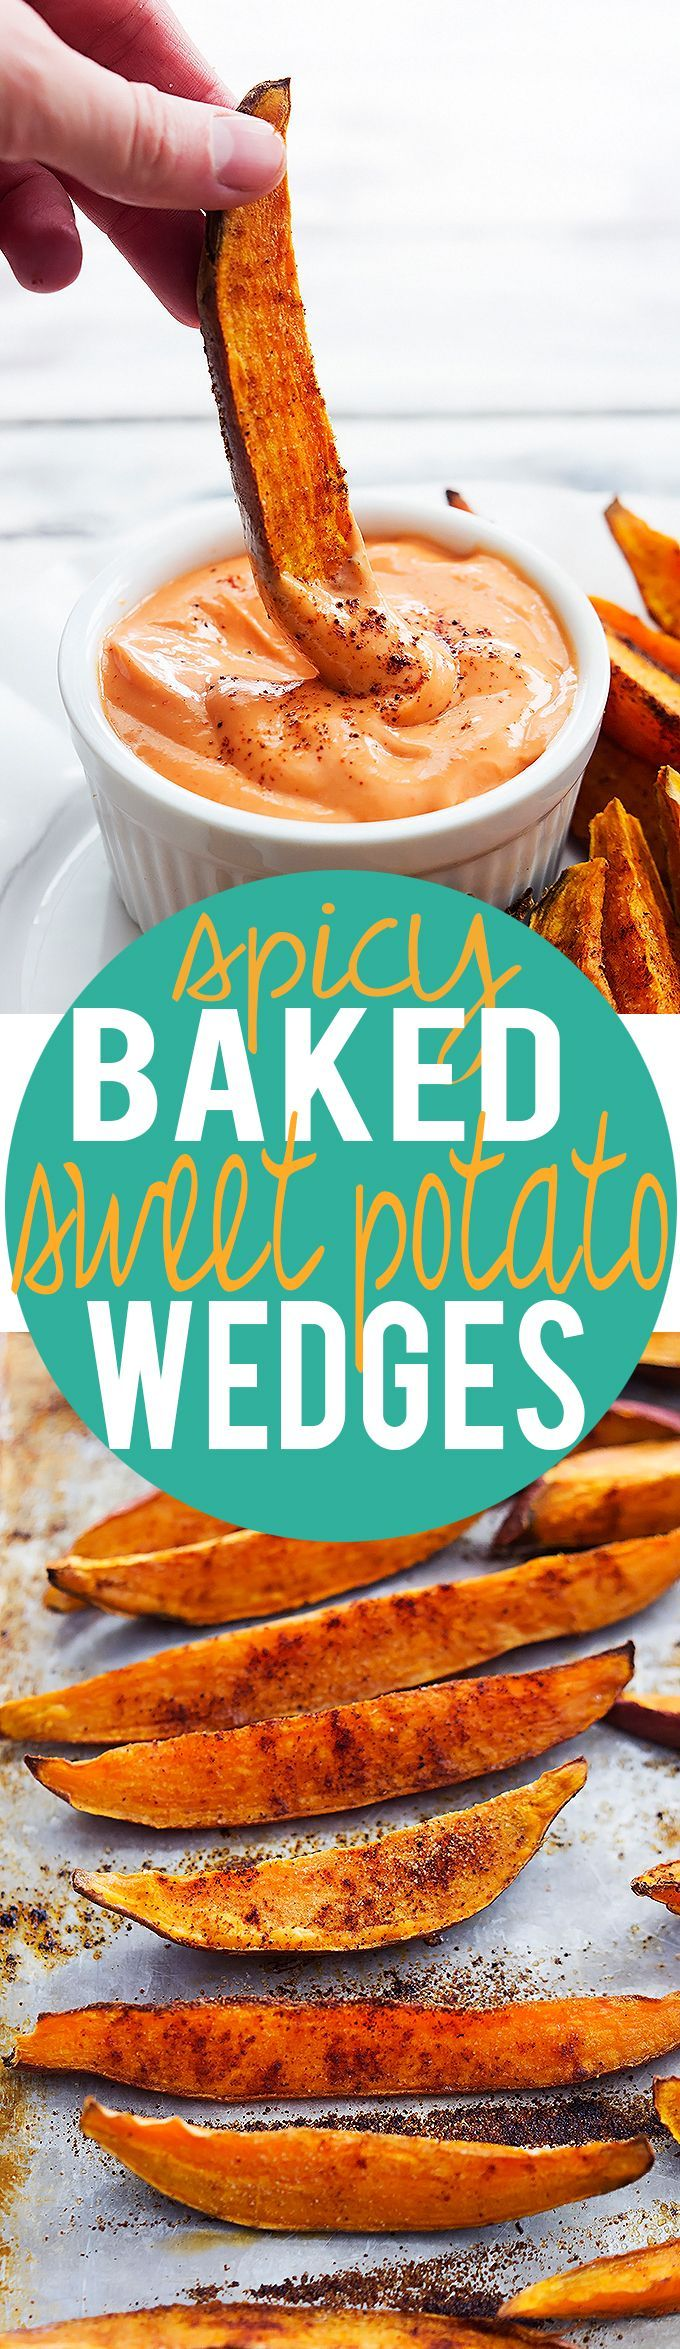 These spicy baked sweet potato wedges are easy to make healthier than traditional fries and SO delicious!